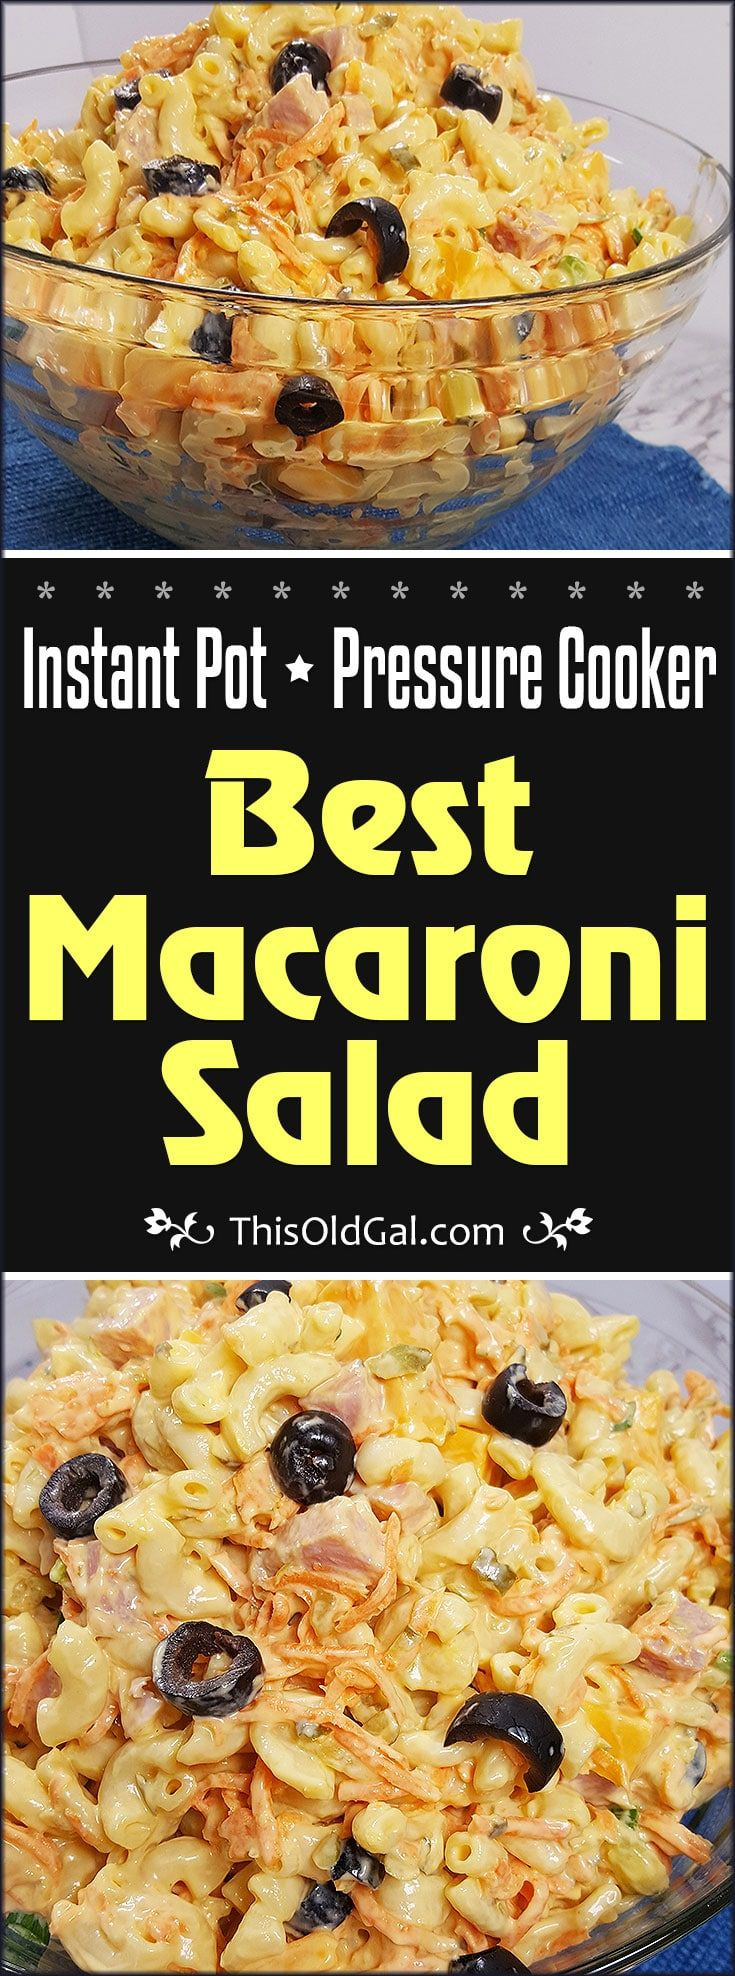 This Pressure Cooker Best Macaroni Salad Recipe is perfect for picnics. It's flavorful, easy to make and ready for the fridge in under 15 minutes! via @thisoldgalcooks